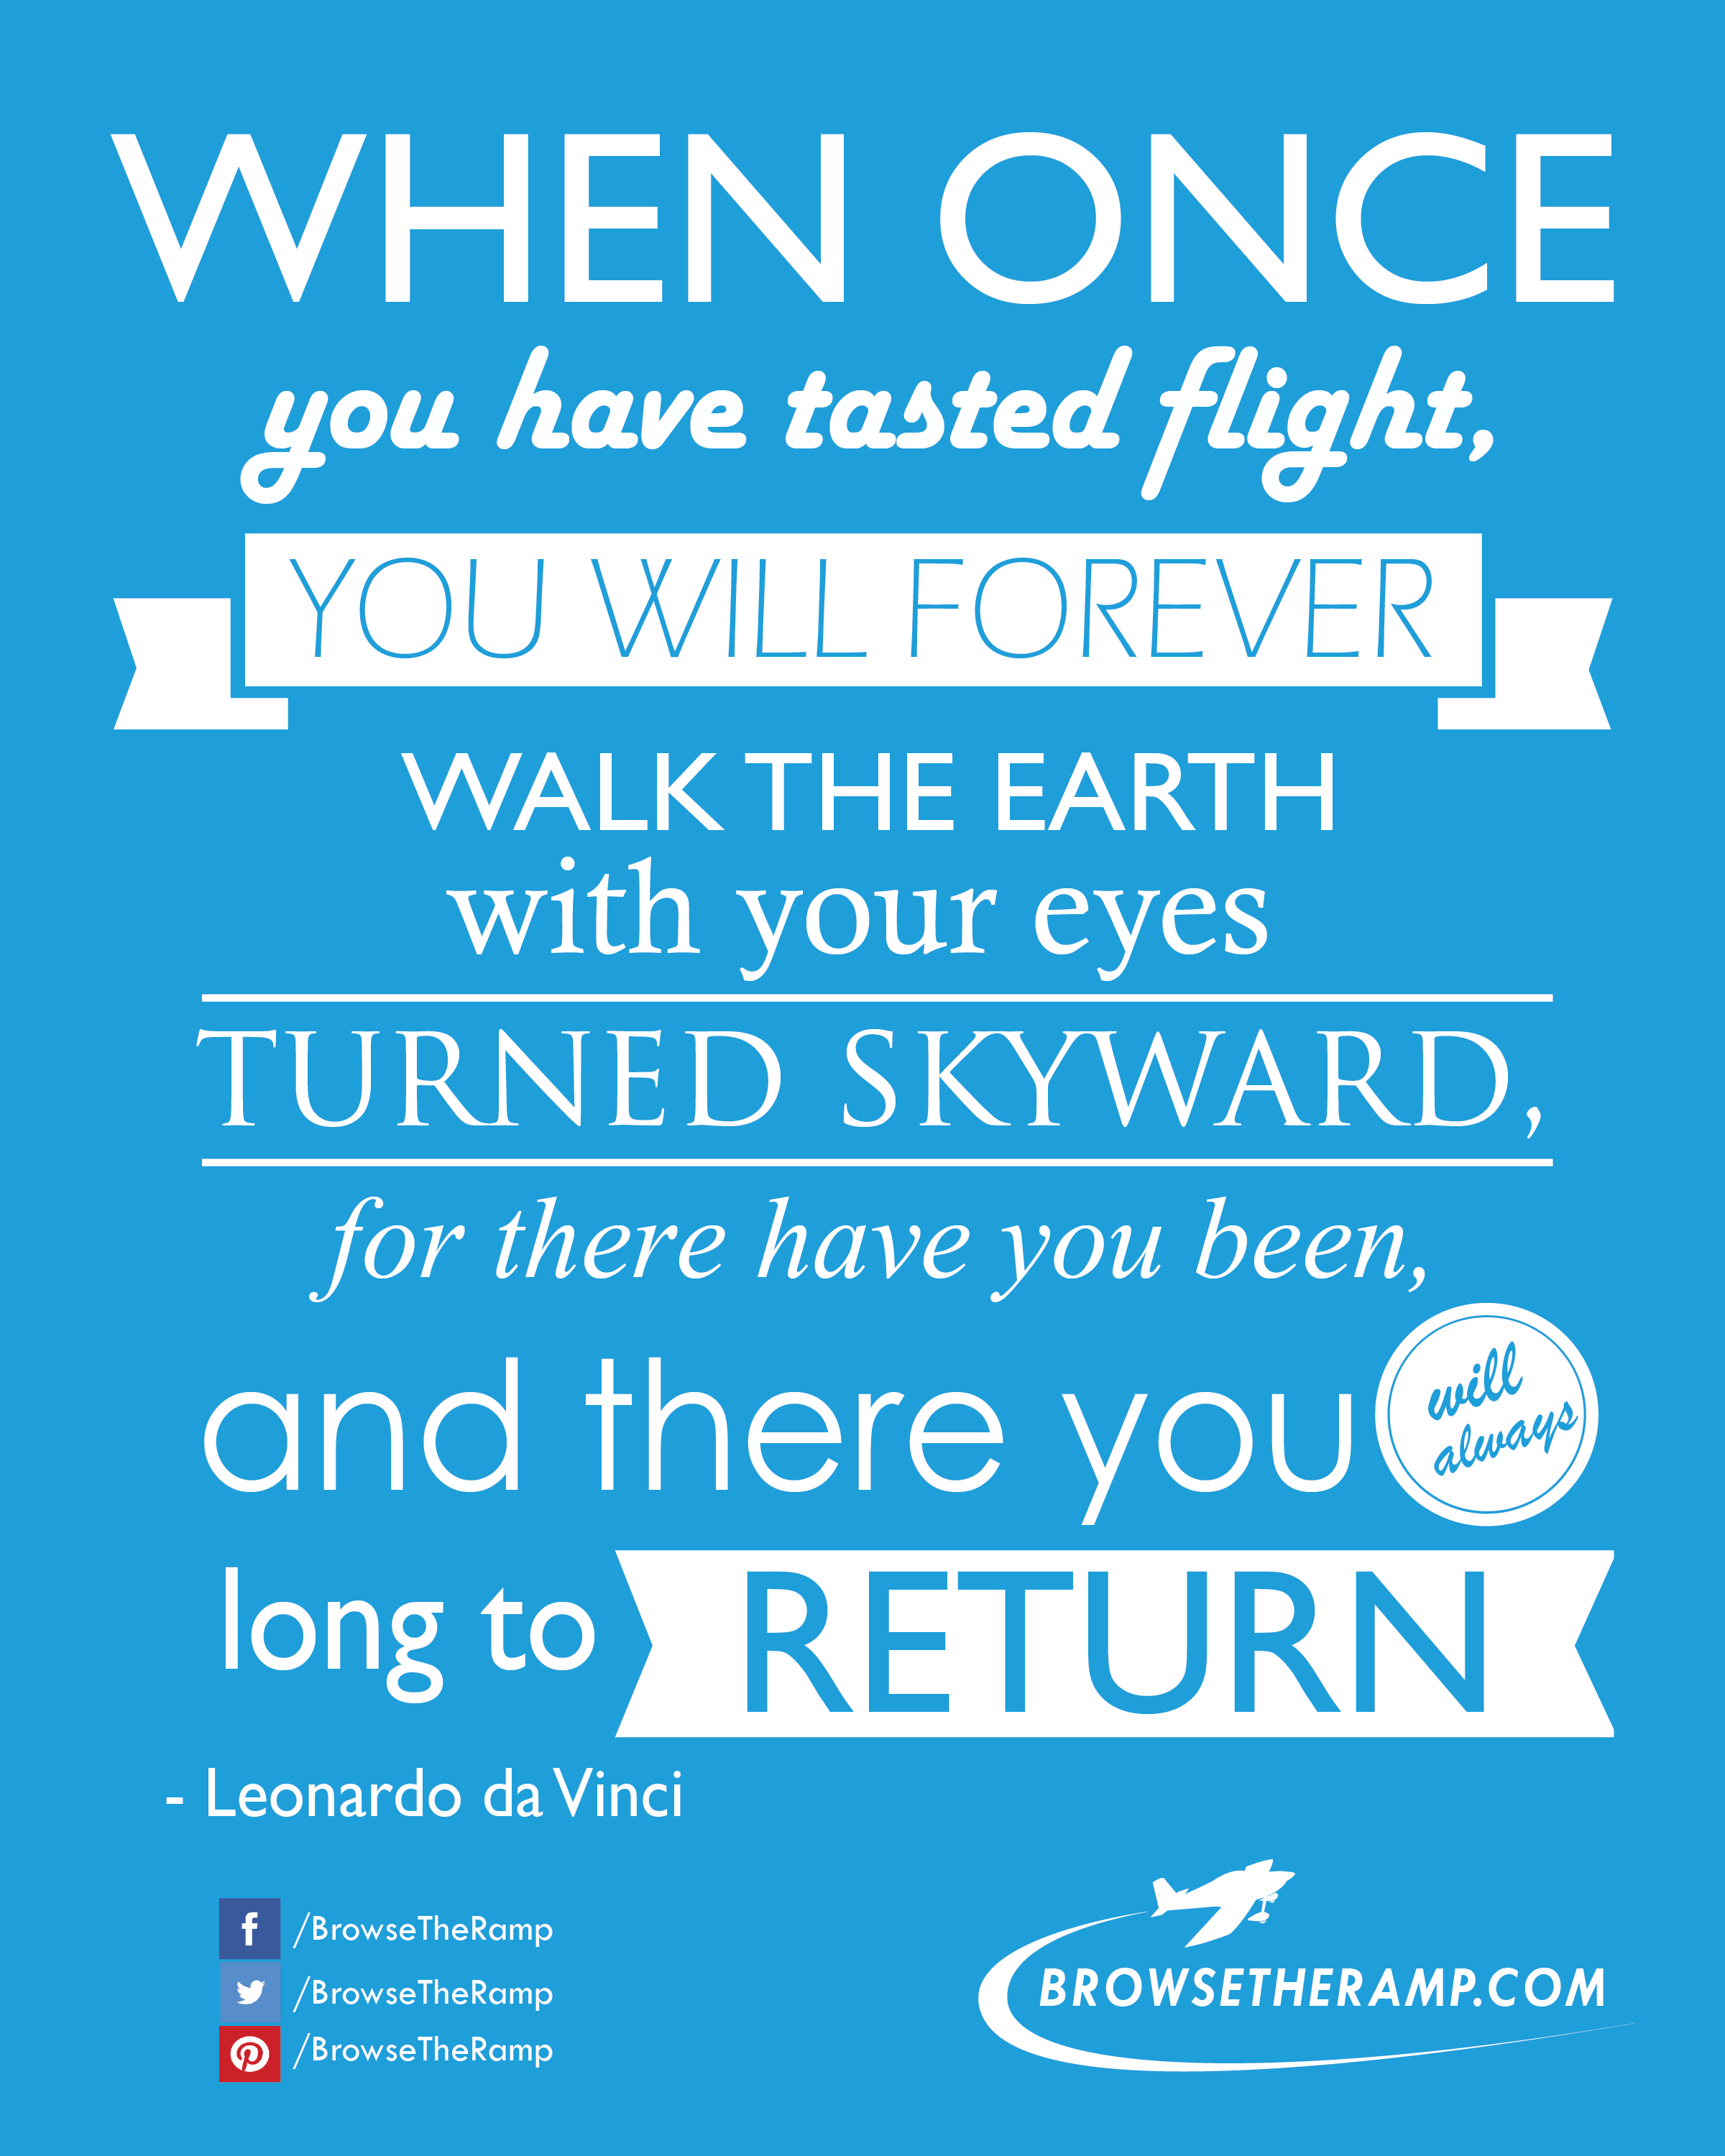 Aviation Quote From Leonardo Da Vinci Www Browsetheramp